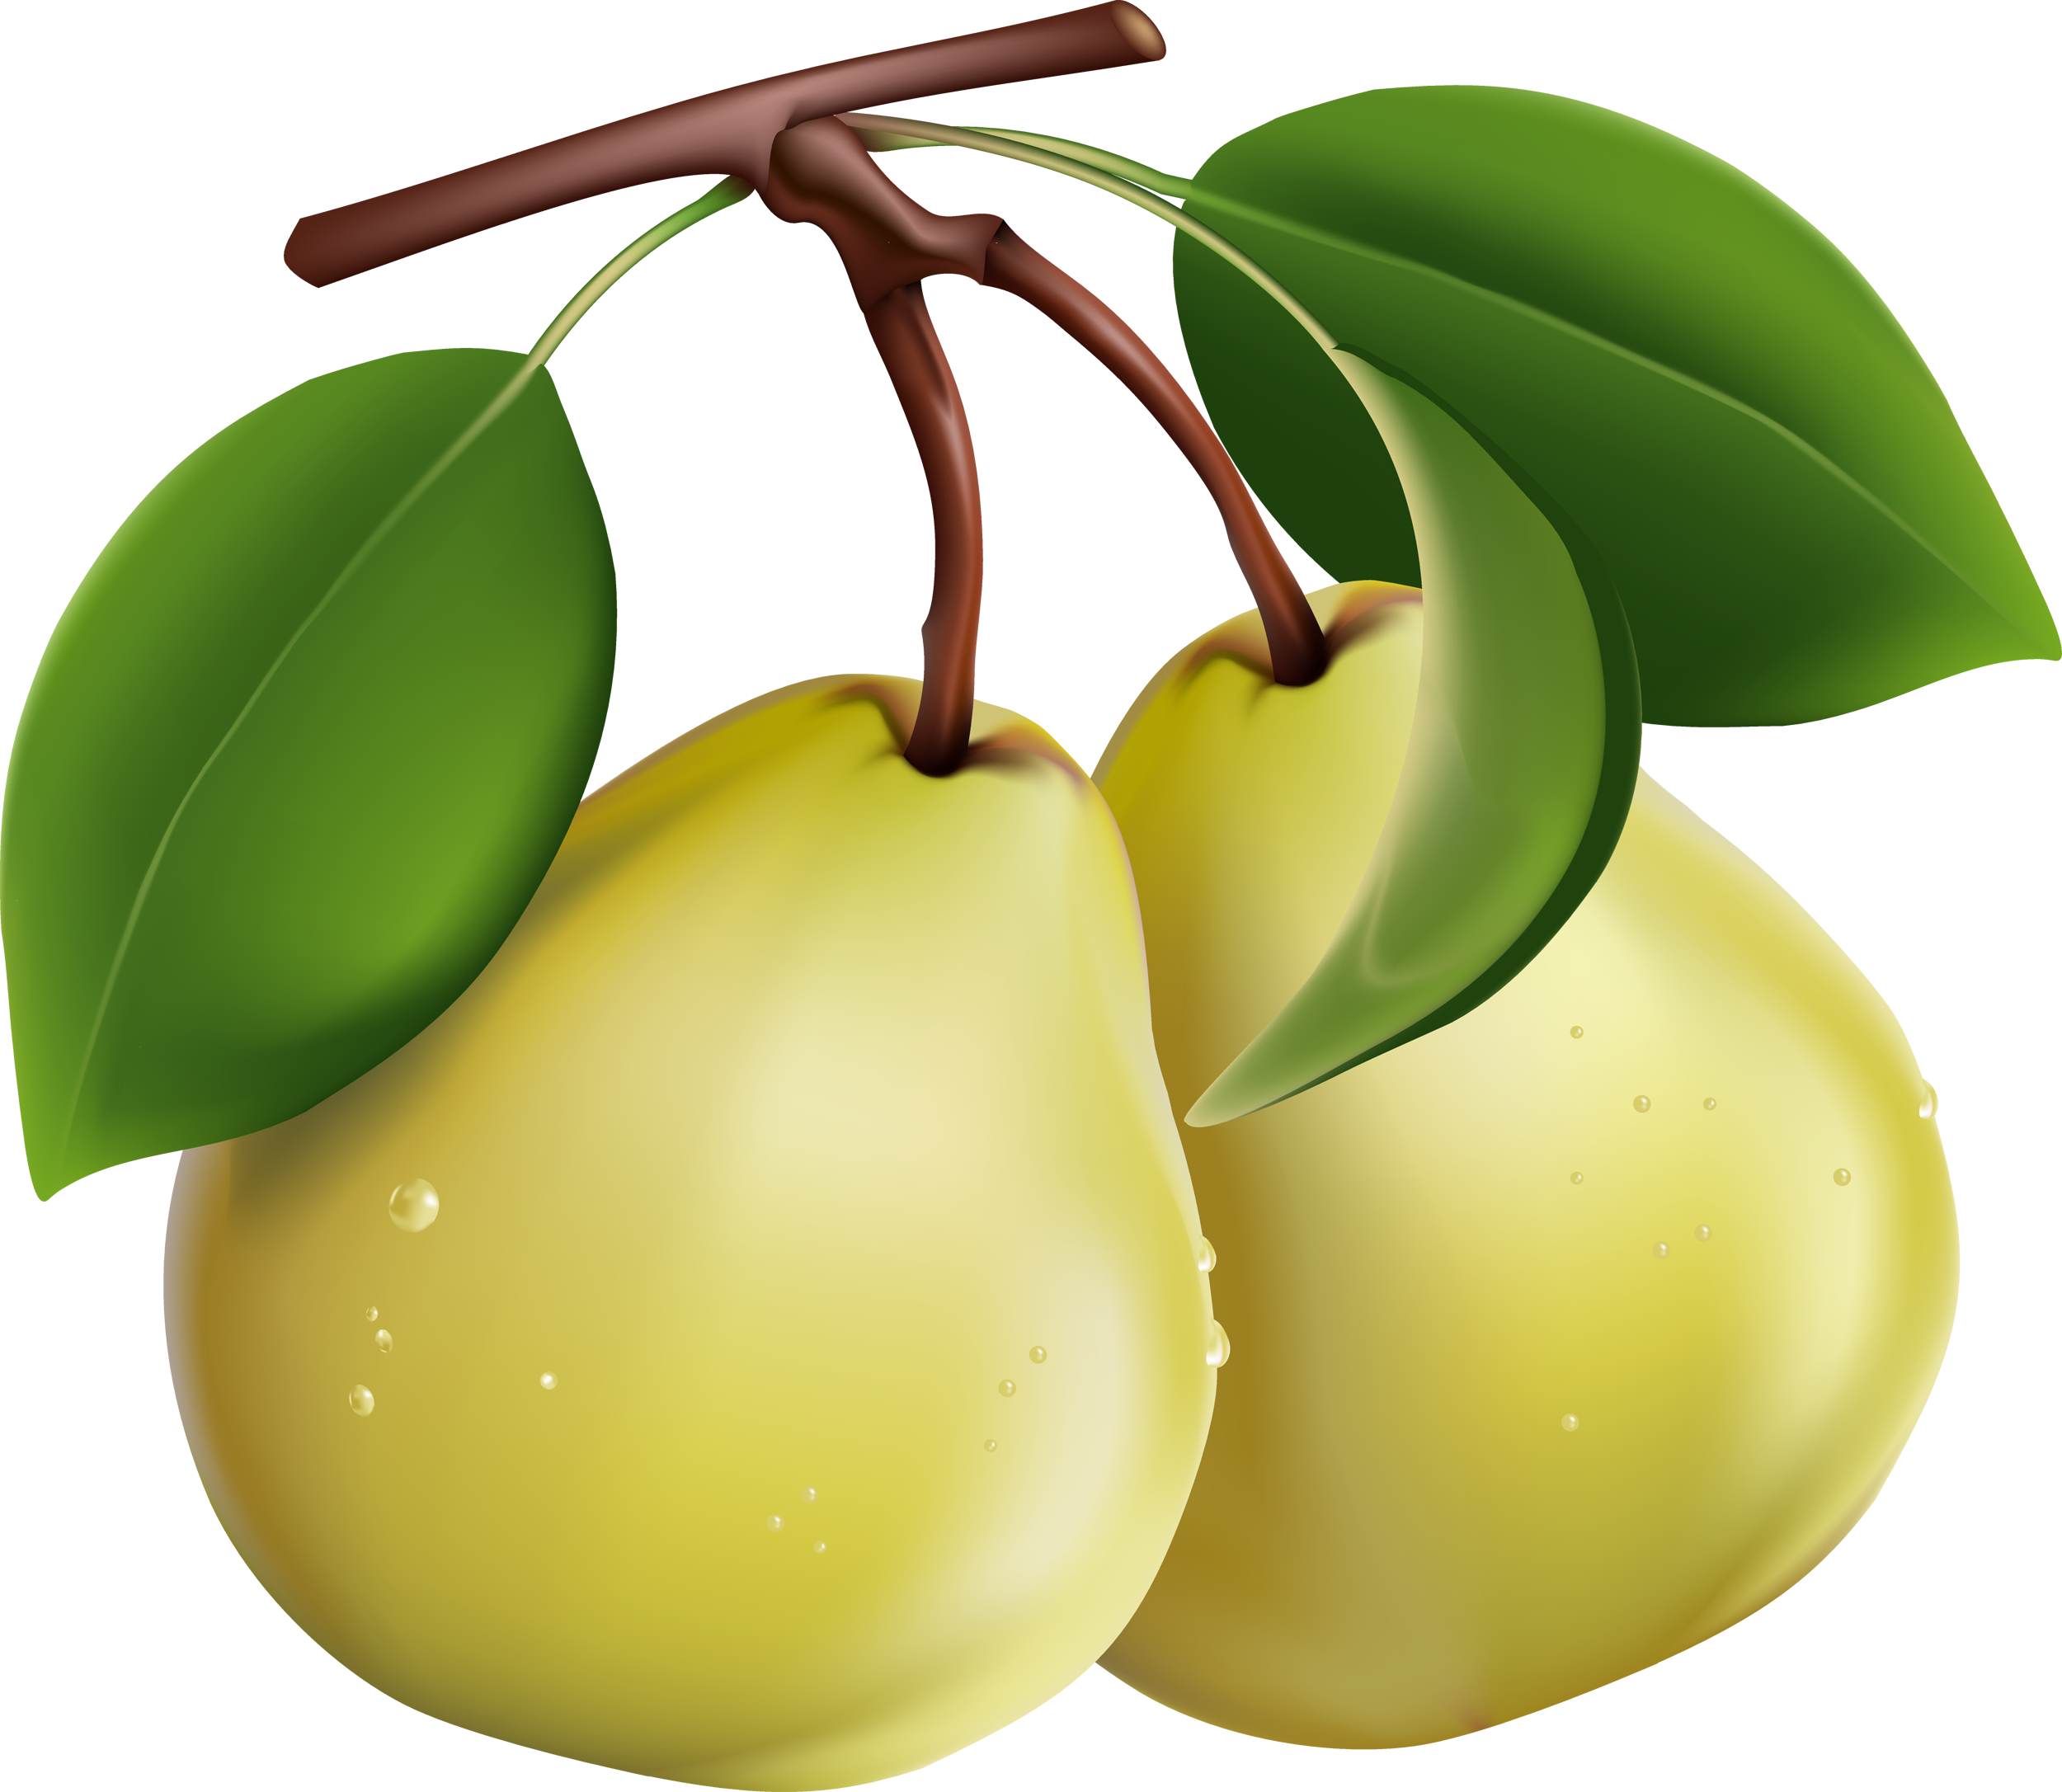 Png transparent images all. Pear clipart different kind fruit